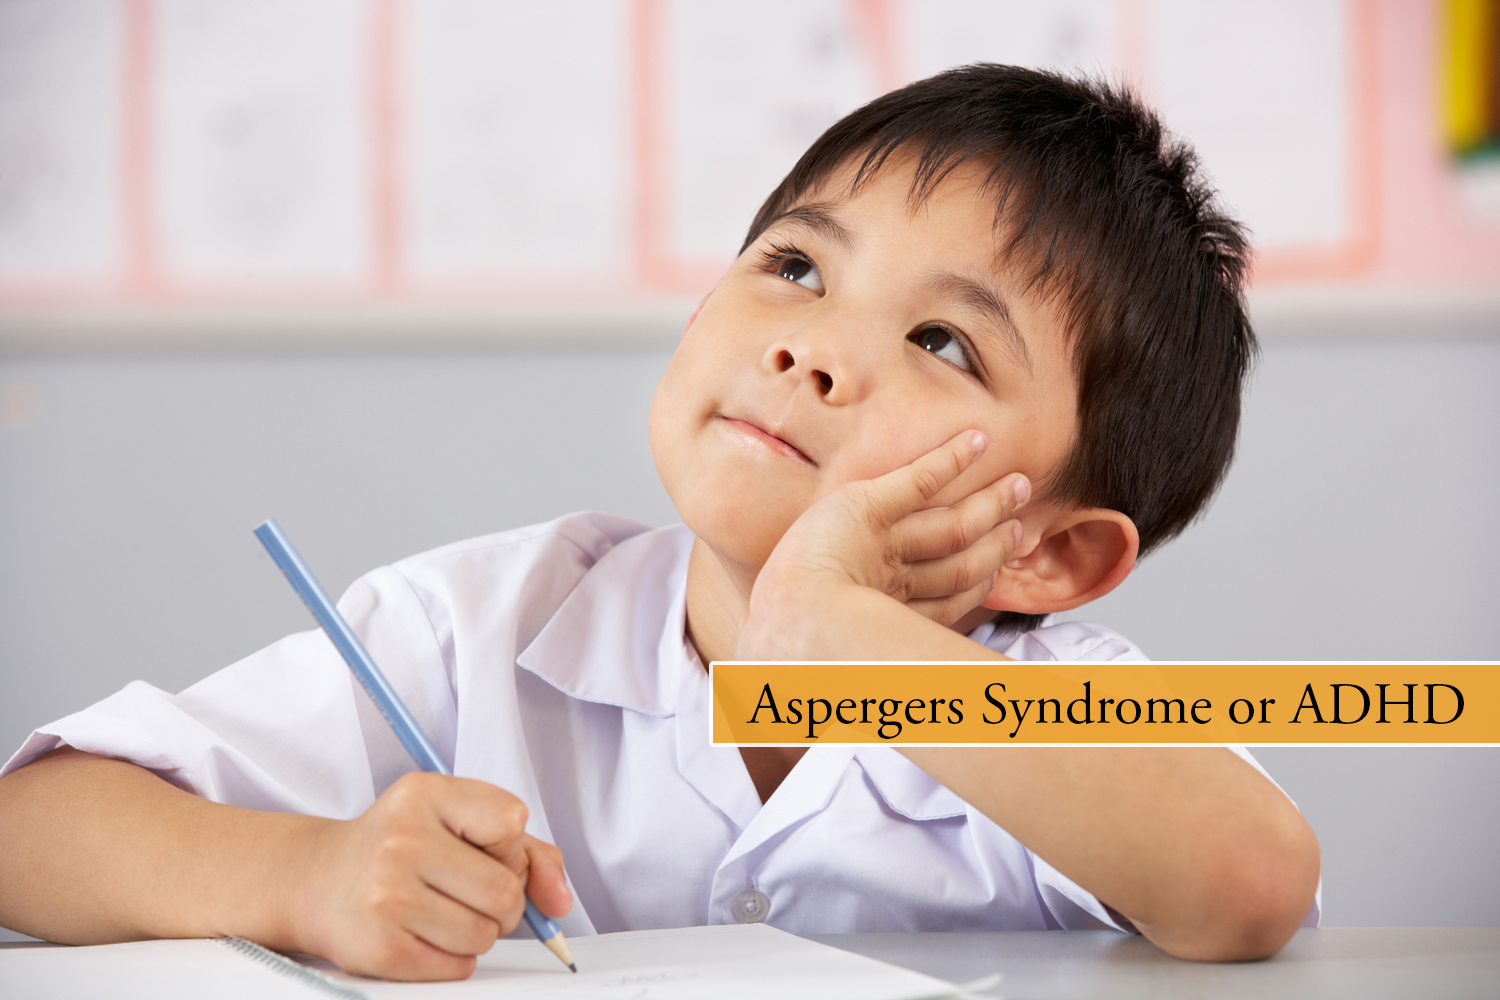 adhd a behavioral disorder in children As of 2016, 61 million children aged 2-17 years living in the us had been diagnosed with adhd, which is similar to previous estimates.